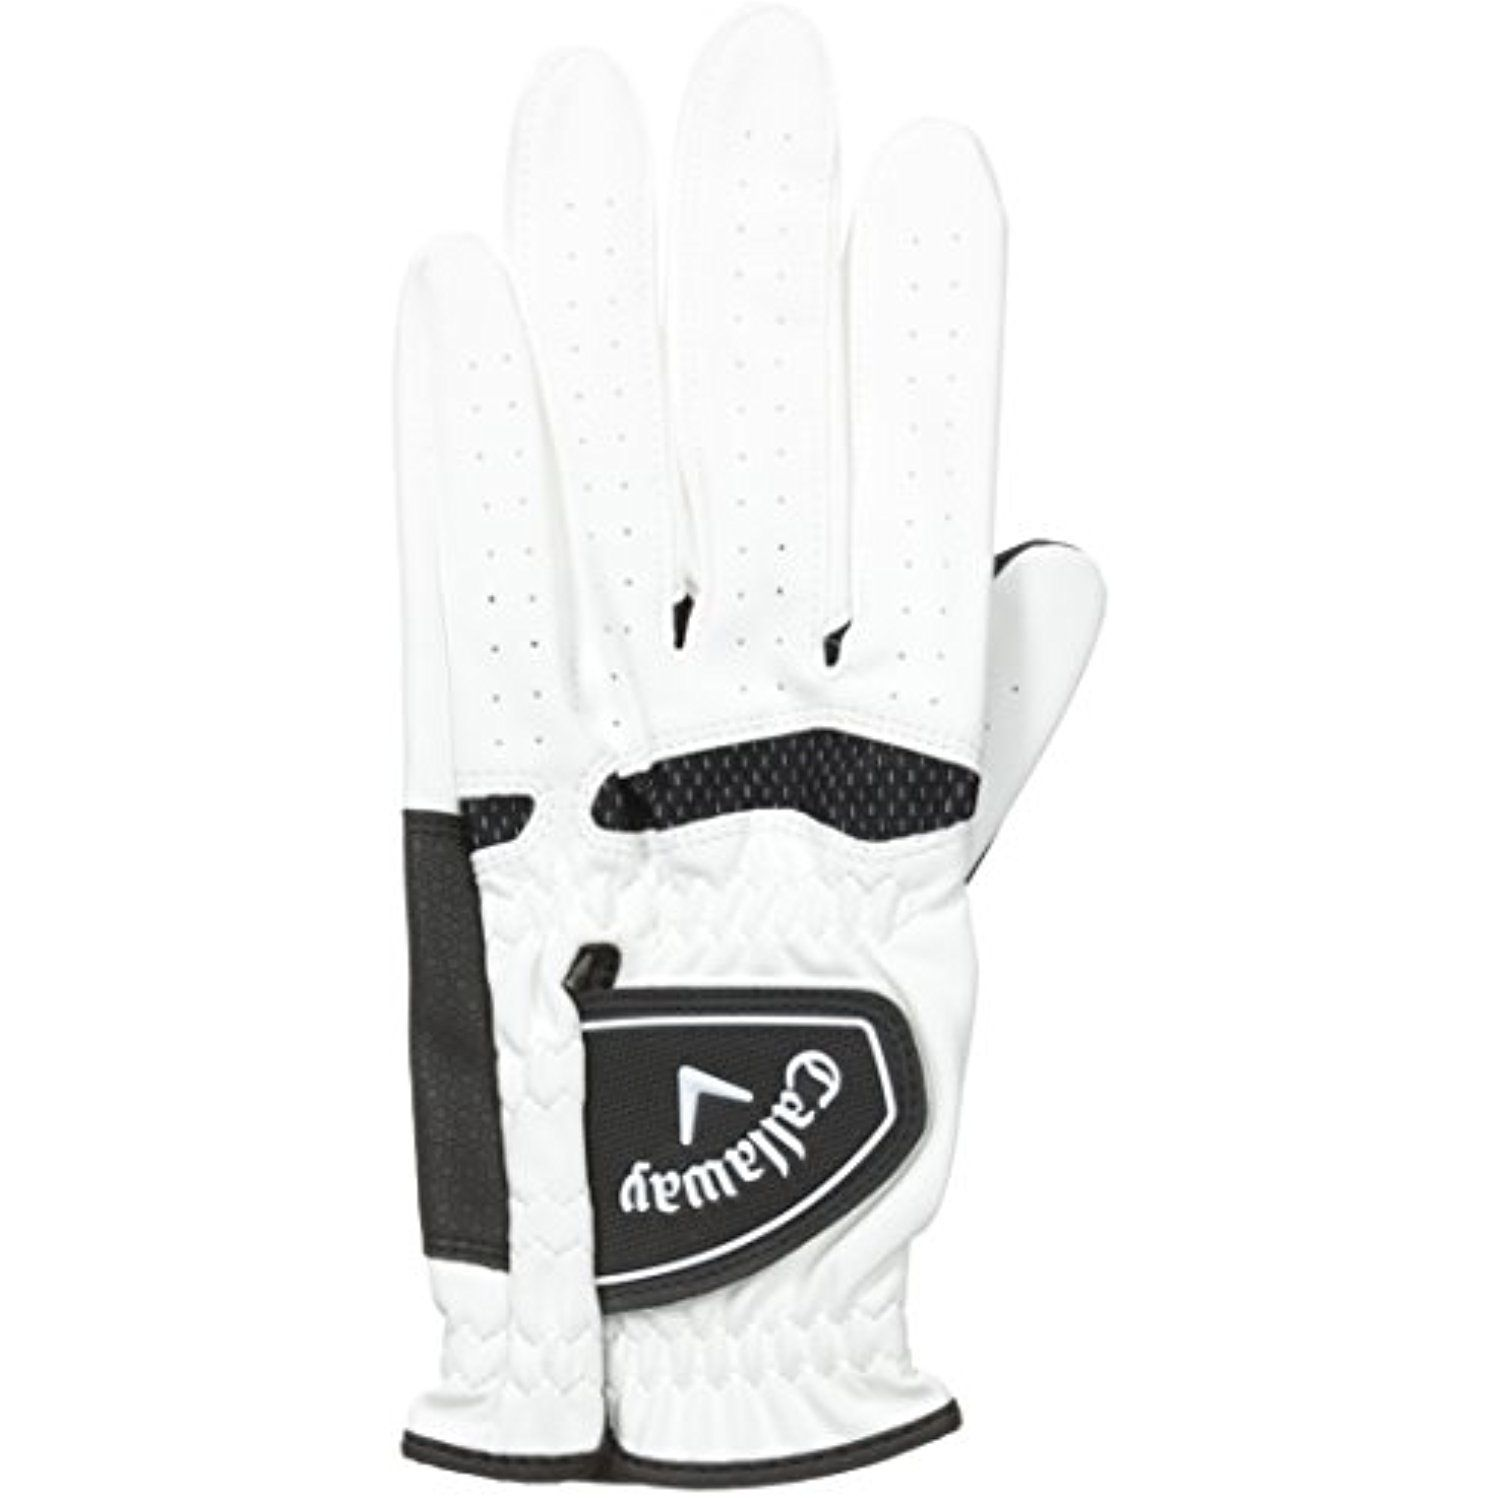 Callaway Men S Xtreme 365 Golf Glove You Can Find Out More Details At The Link Of The Image This Is An Affiliate Link Golf Golf Gloves Mens Gloves Golf